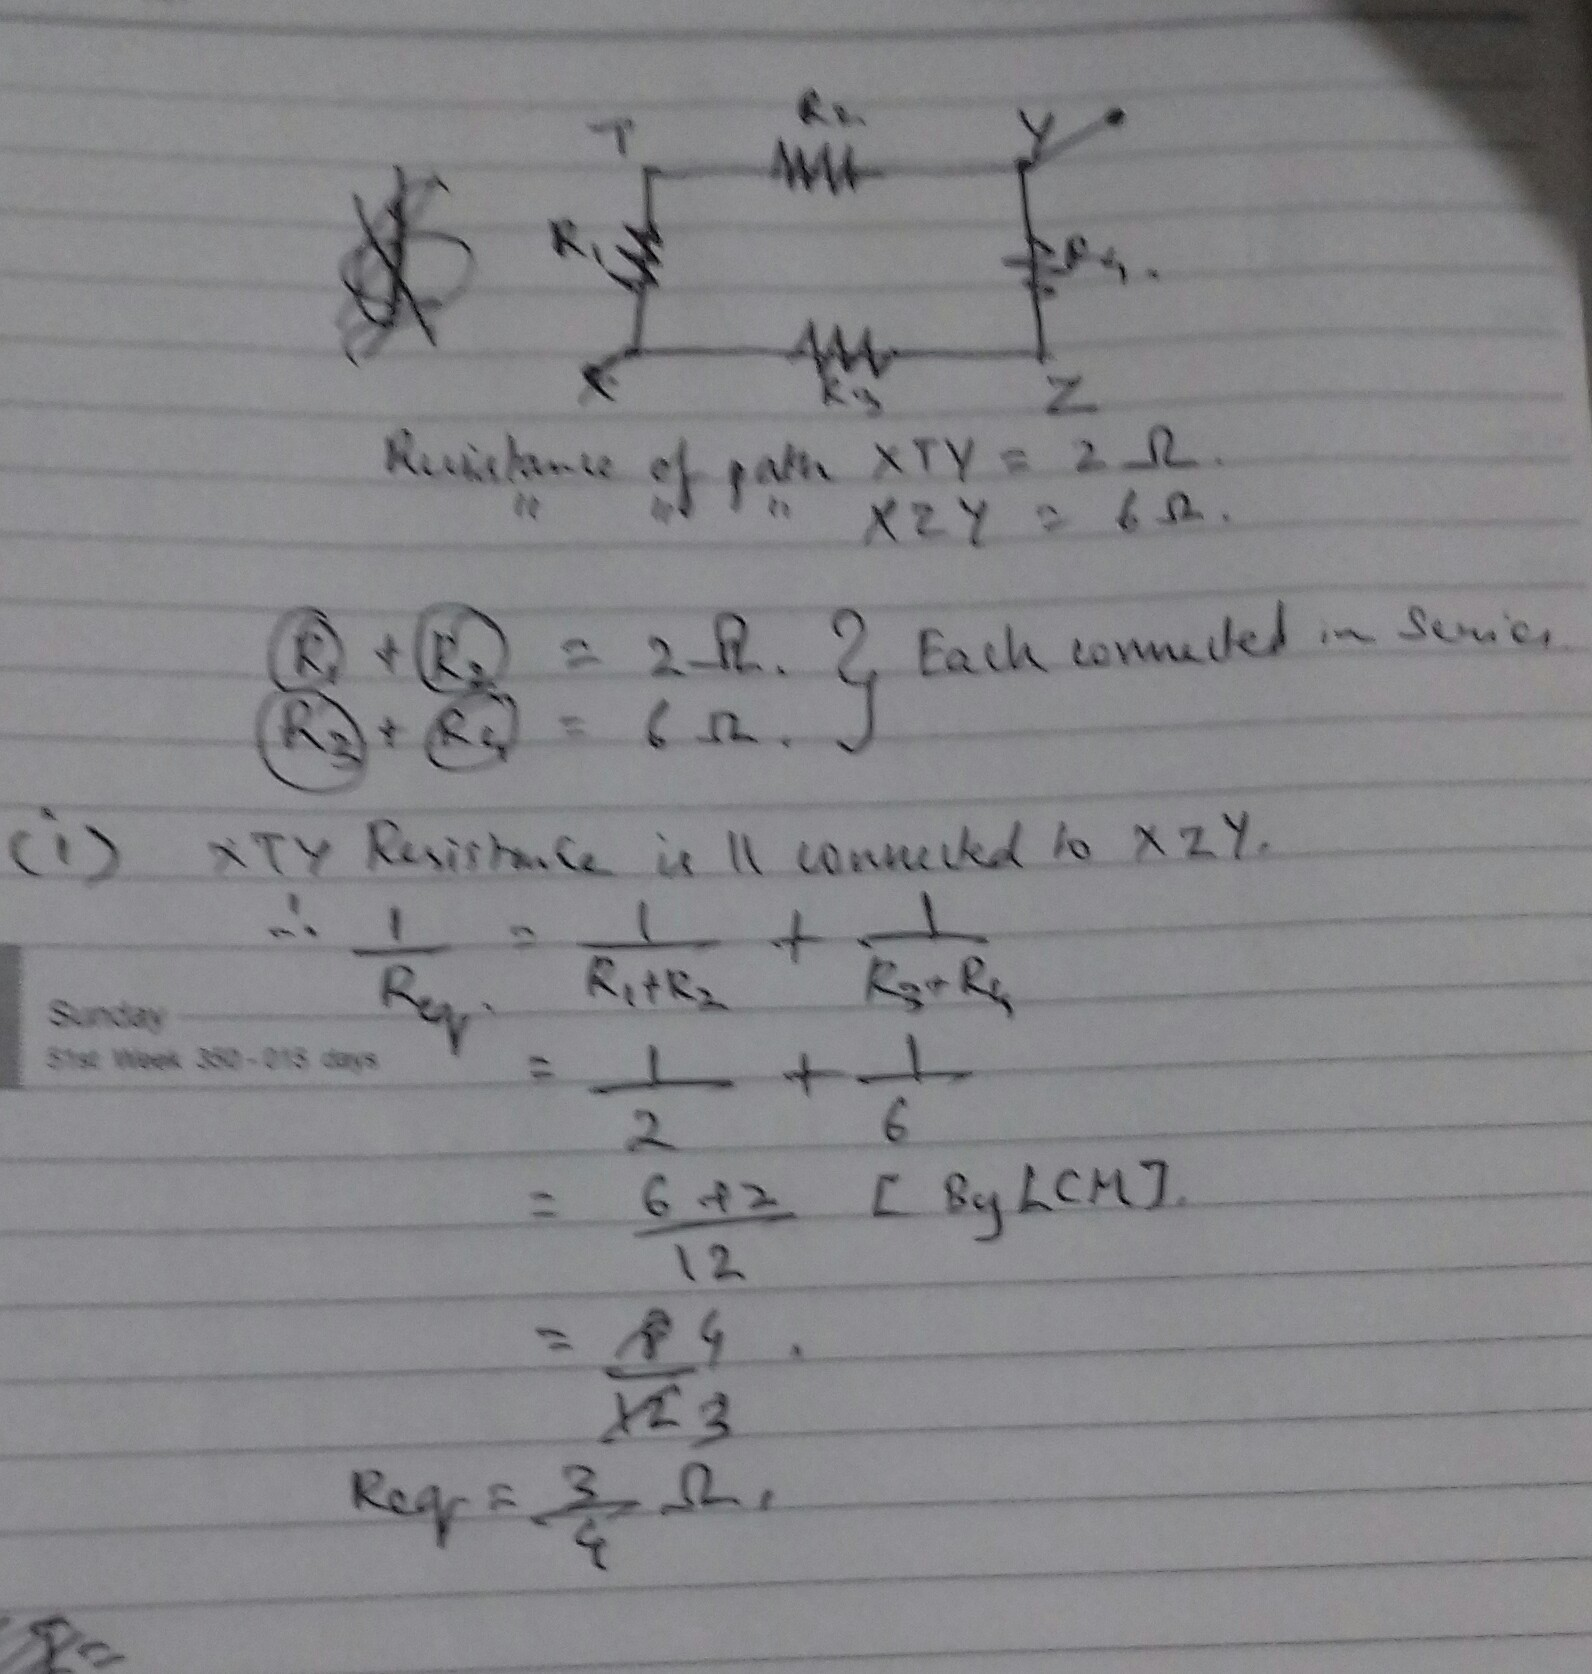 In Circuit Given Below Resistance Of Path Xty 2ohm And That Xzy 6